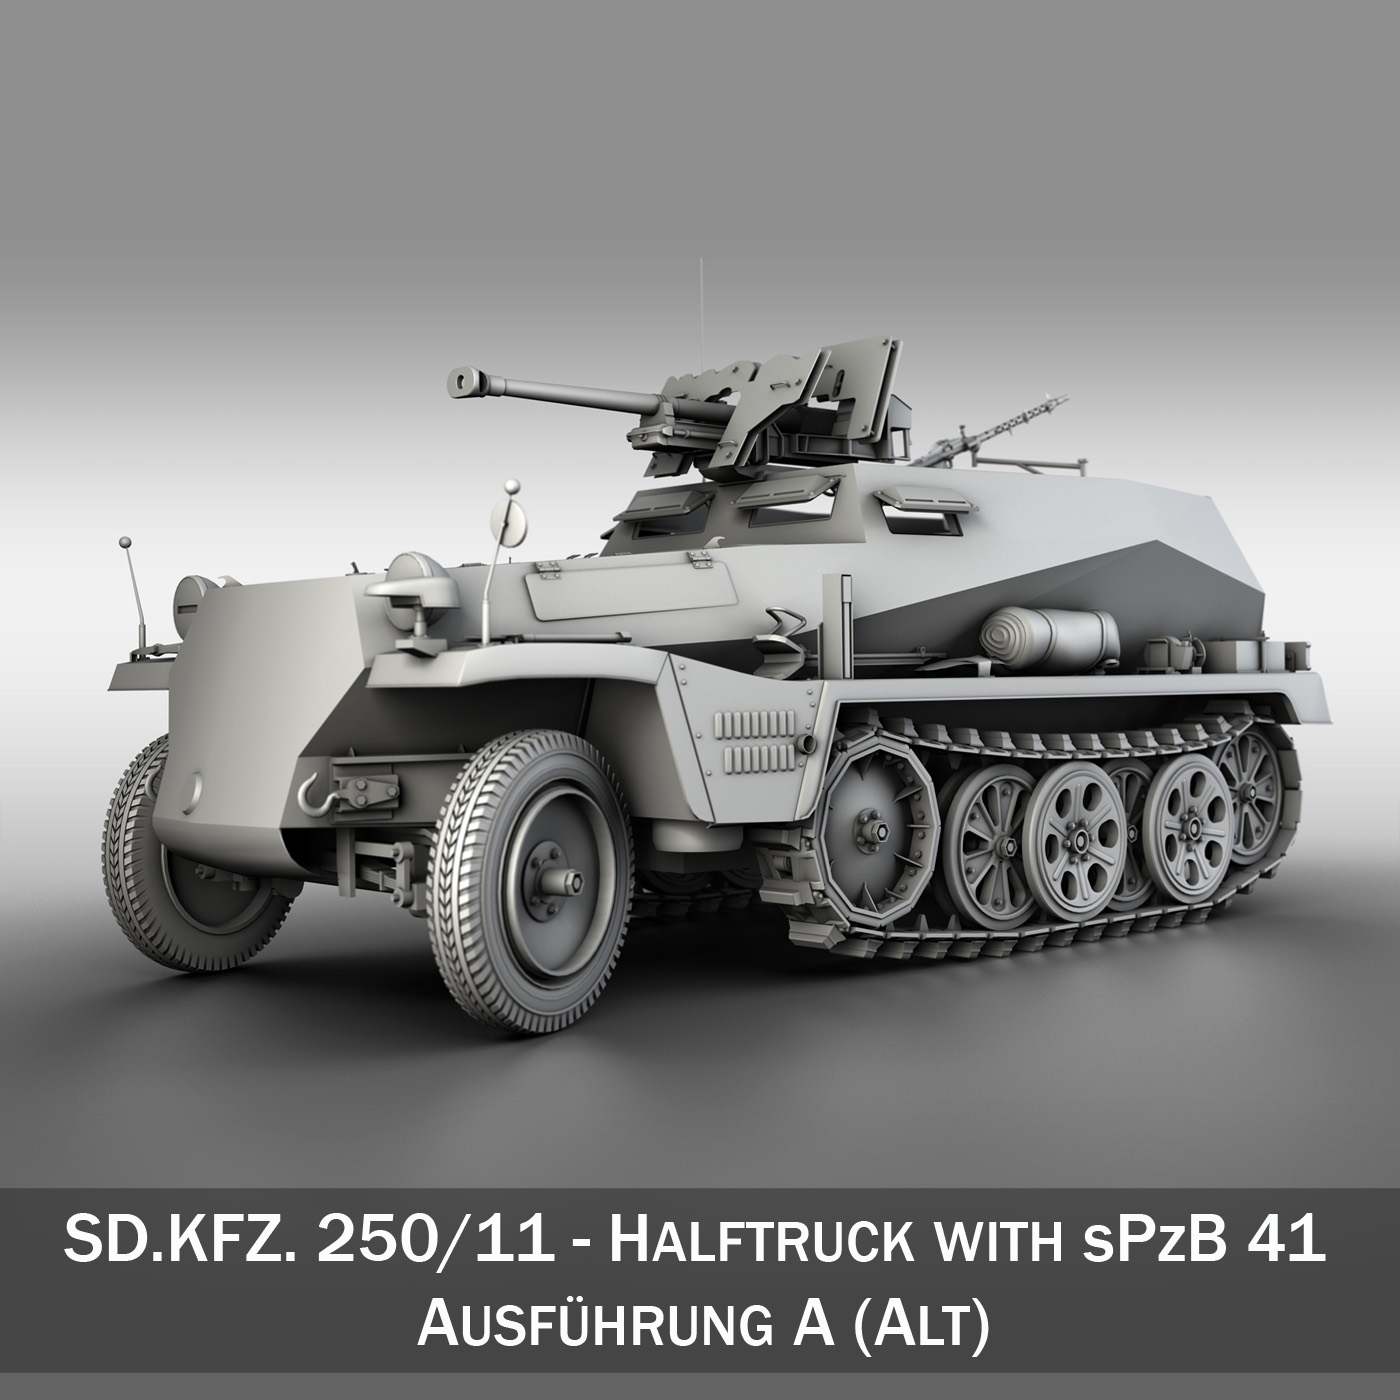 sdkfz 250 – halftruck with spzb 41 3d model 3ds fbx c4d lwo obj 251641